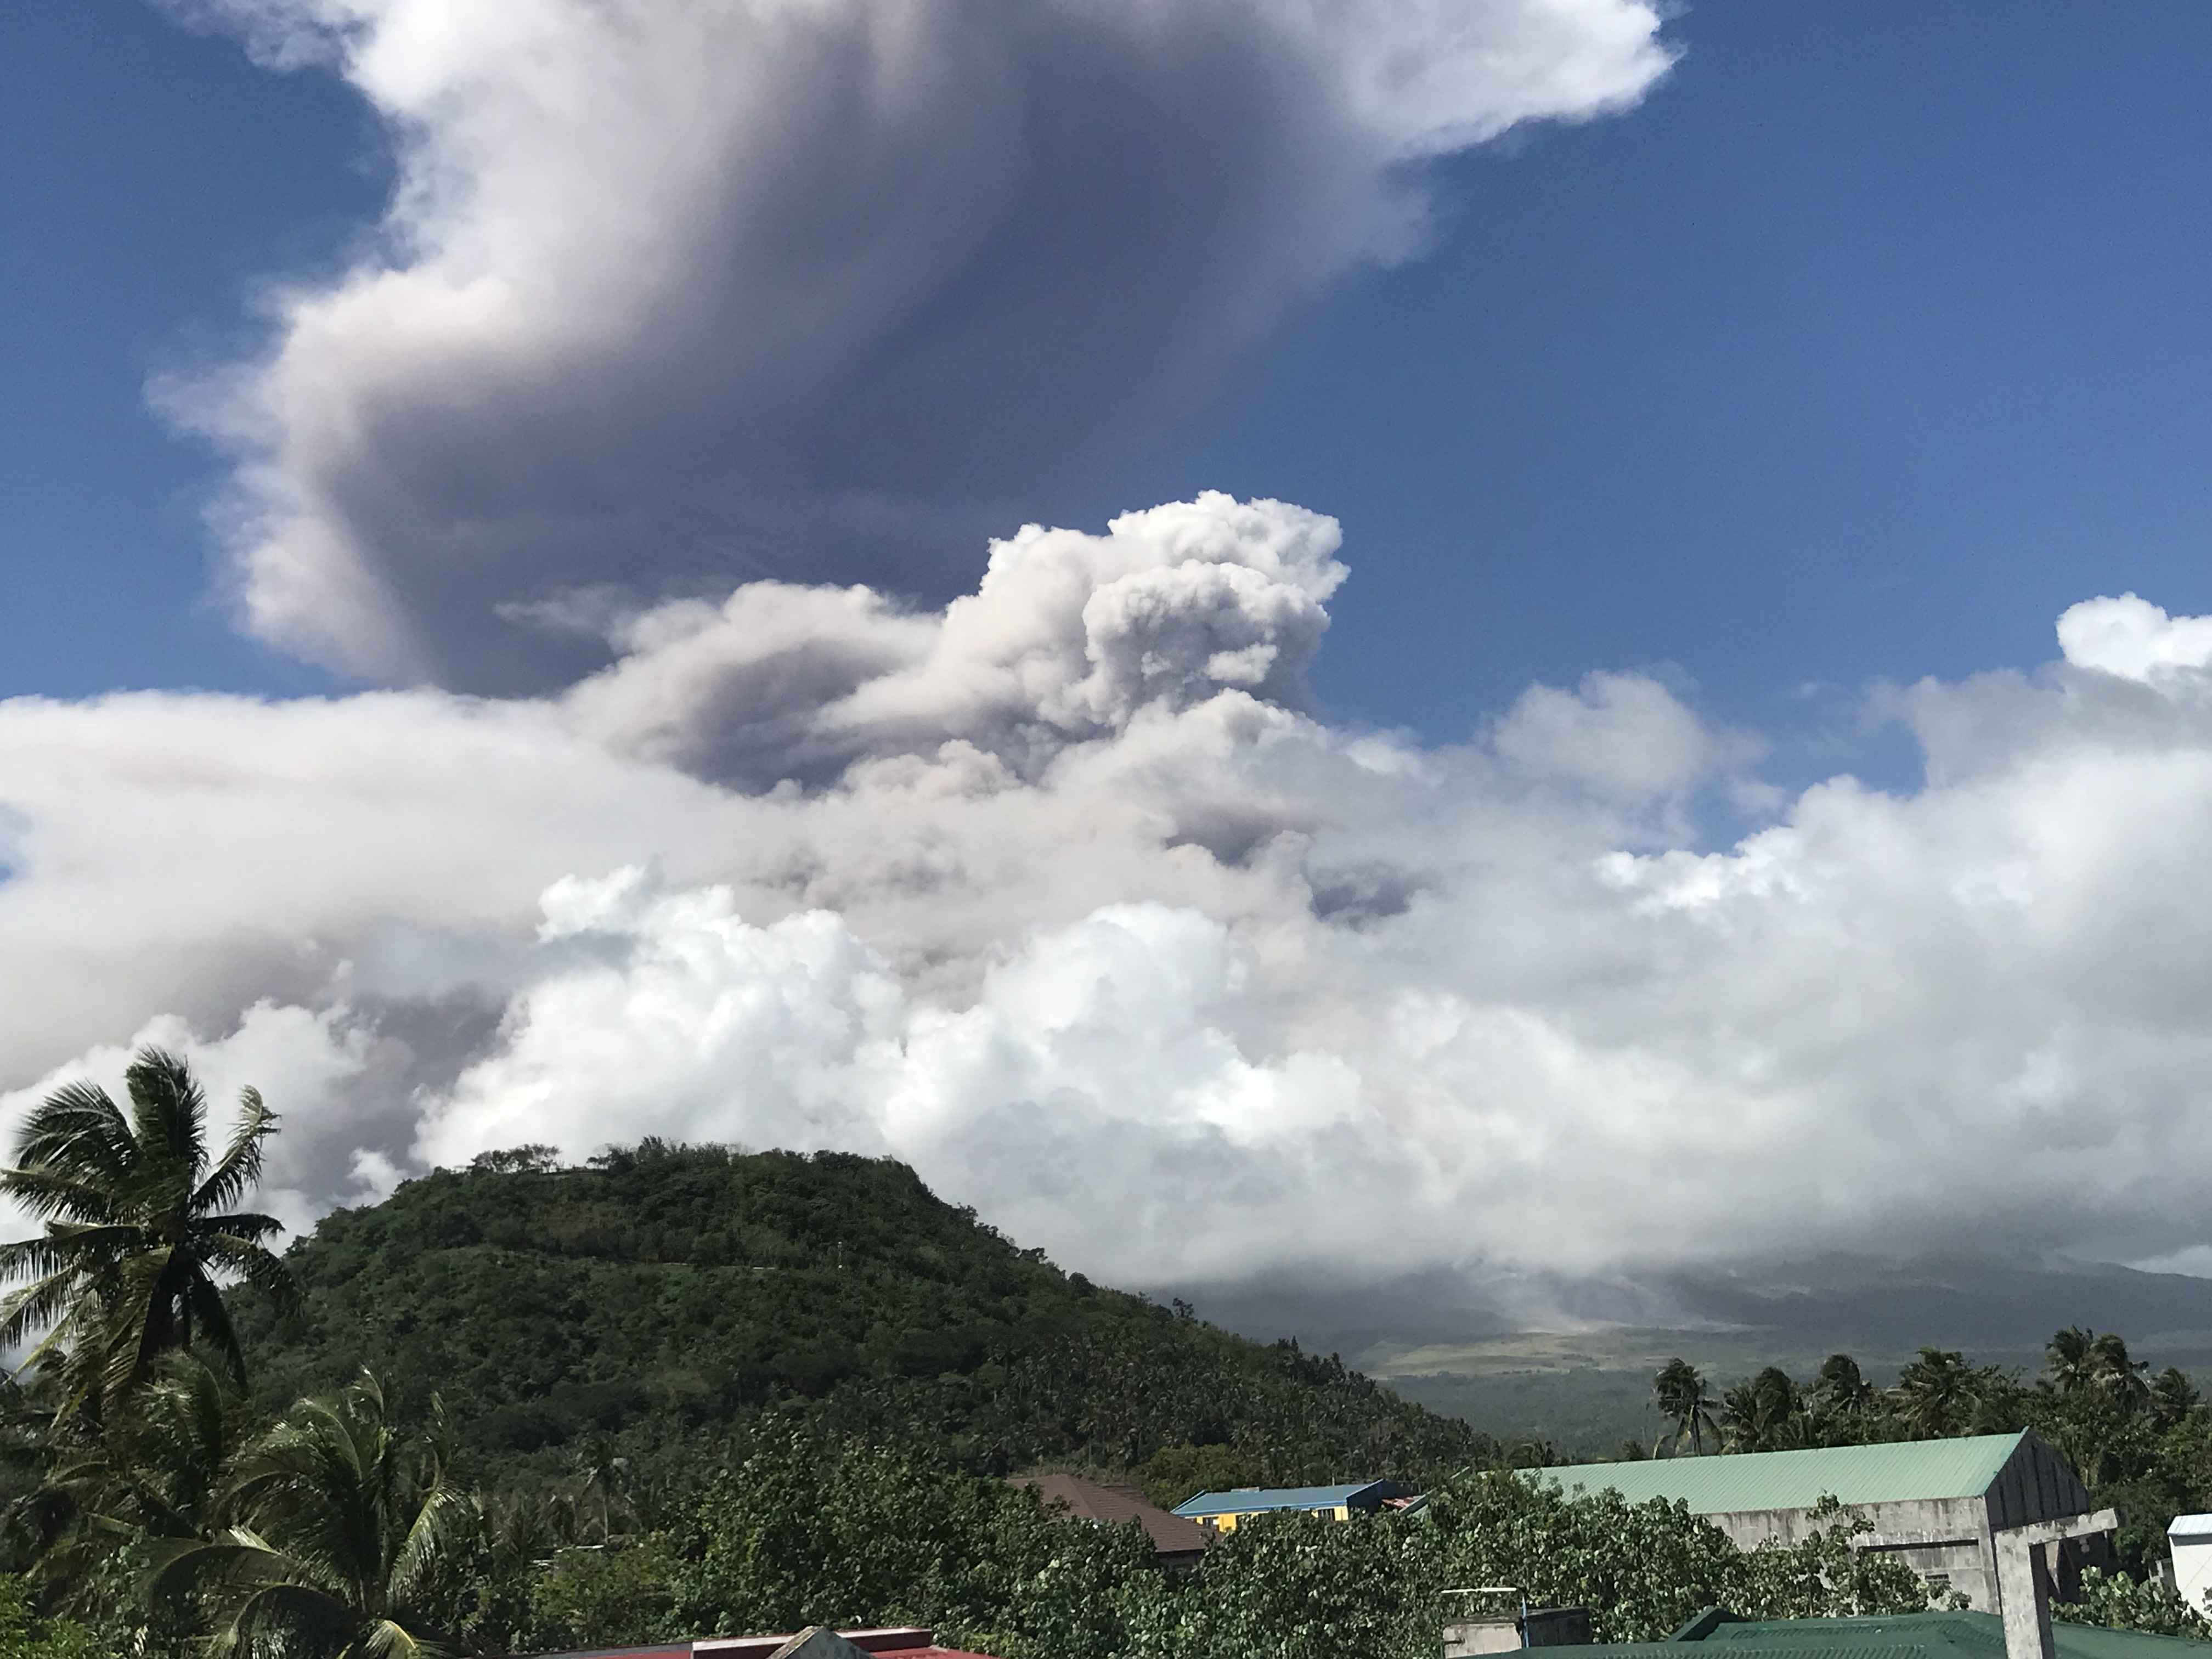 MAYON VOLCANO. Mayon spews a giant ash column that reached up to 5 kilometers high on Monday, January 22. Photo by Marga Deona/Rappler